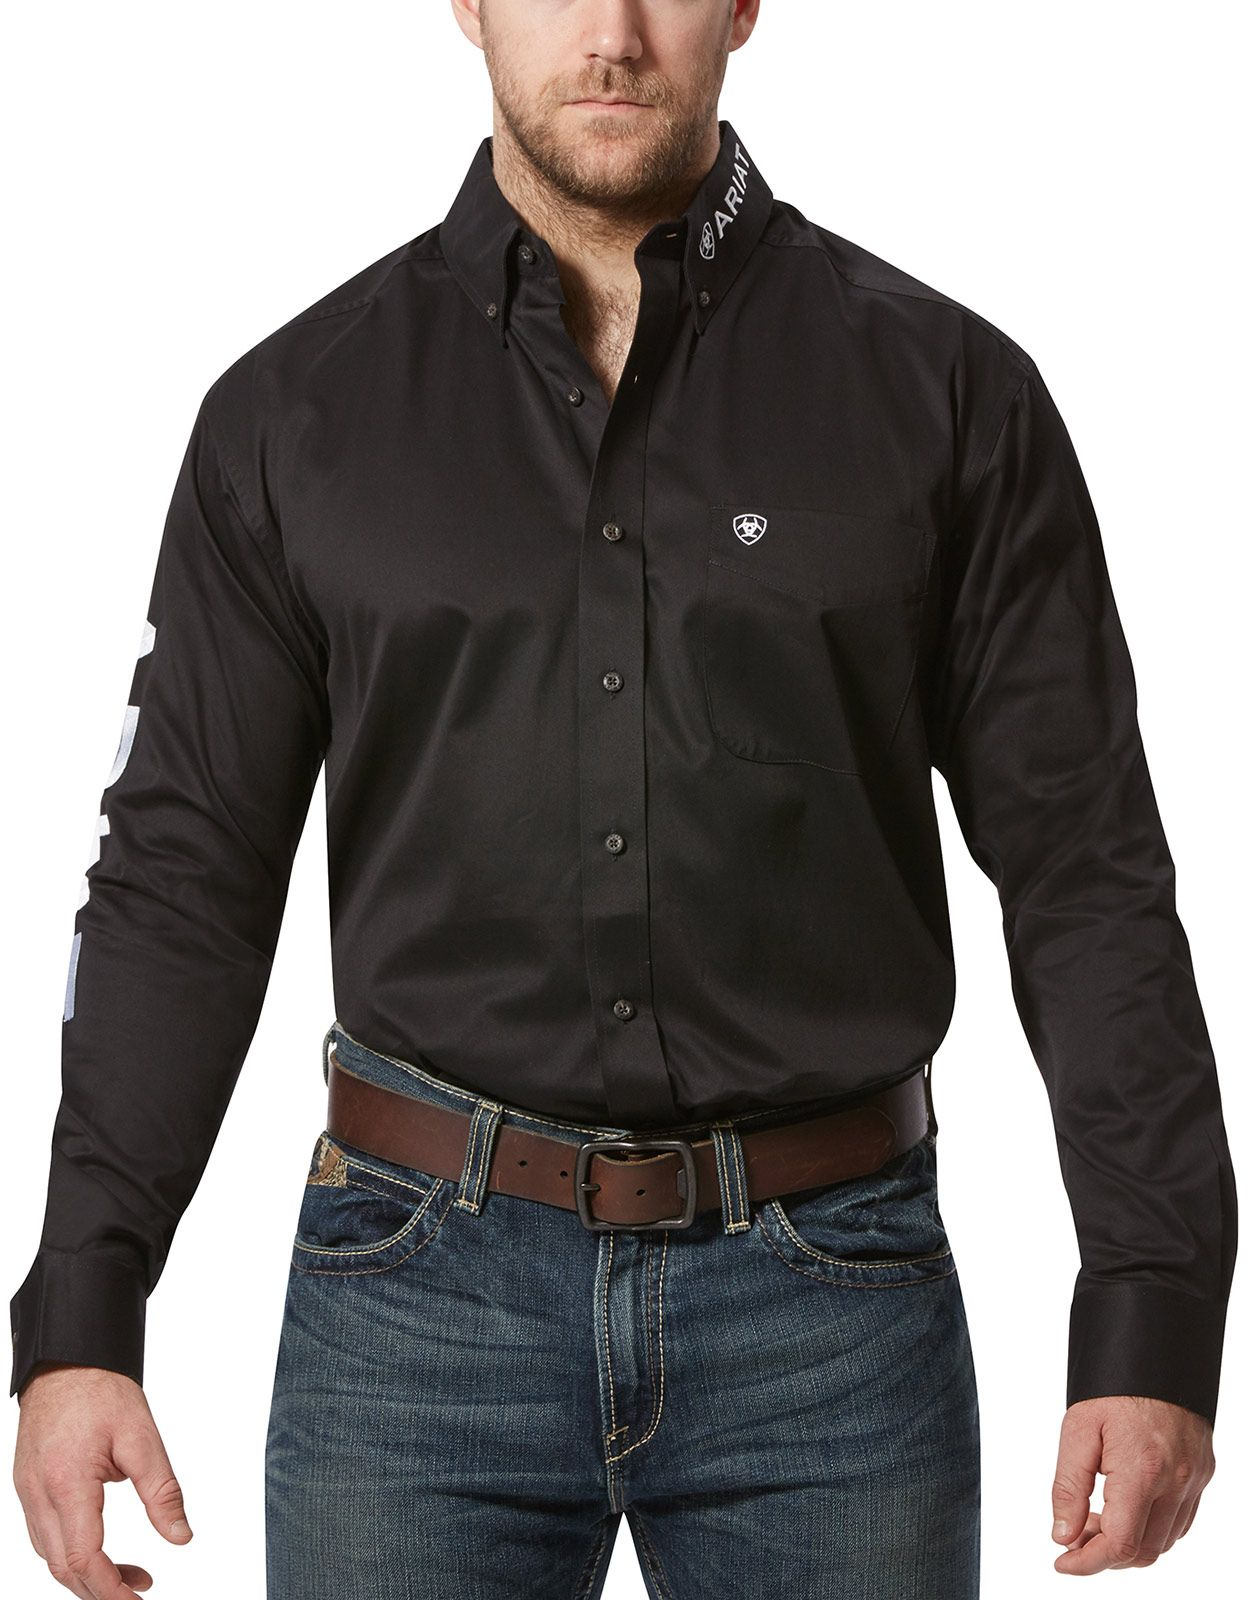 Ariat Men's Casual Series Classic Fit Team Logo Twill Long Sleeve Solid Button Down Shirt - Black/White